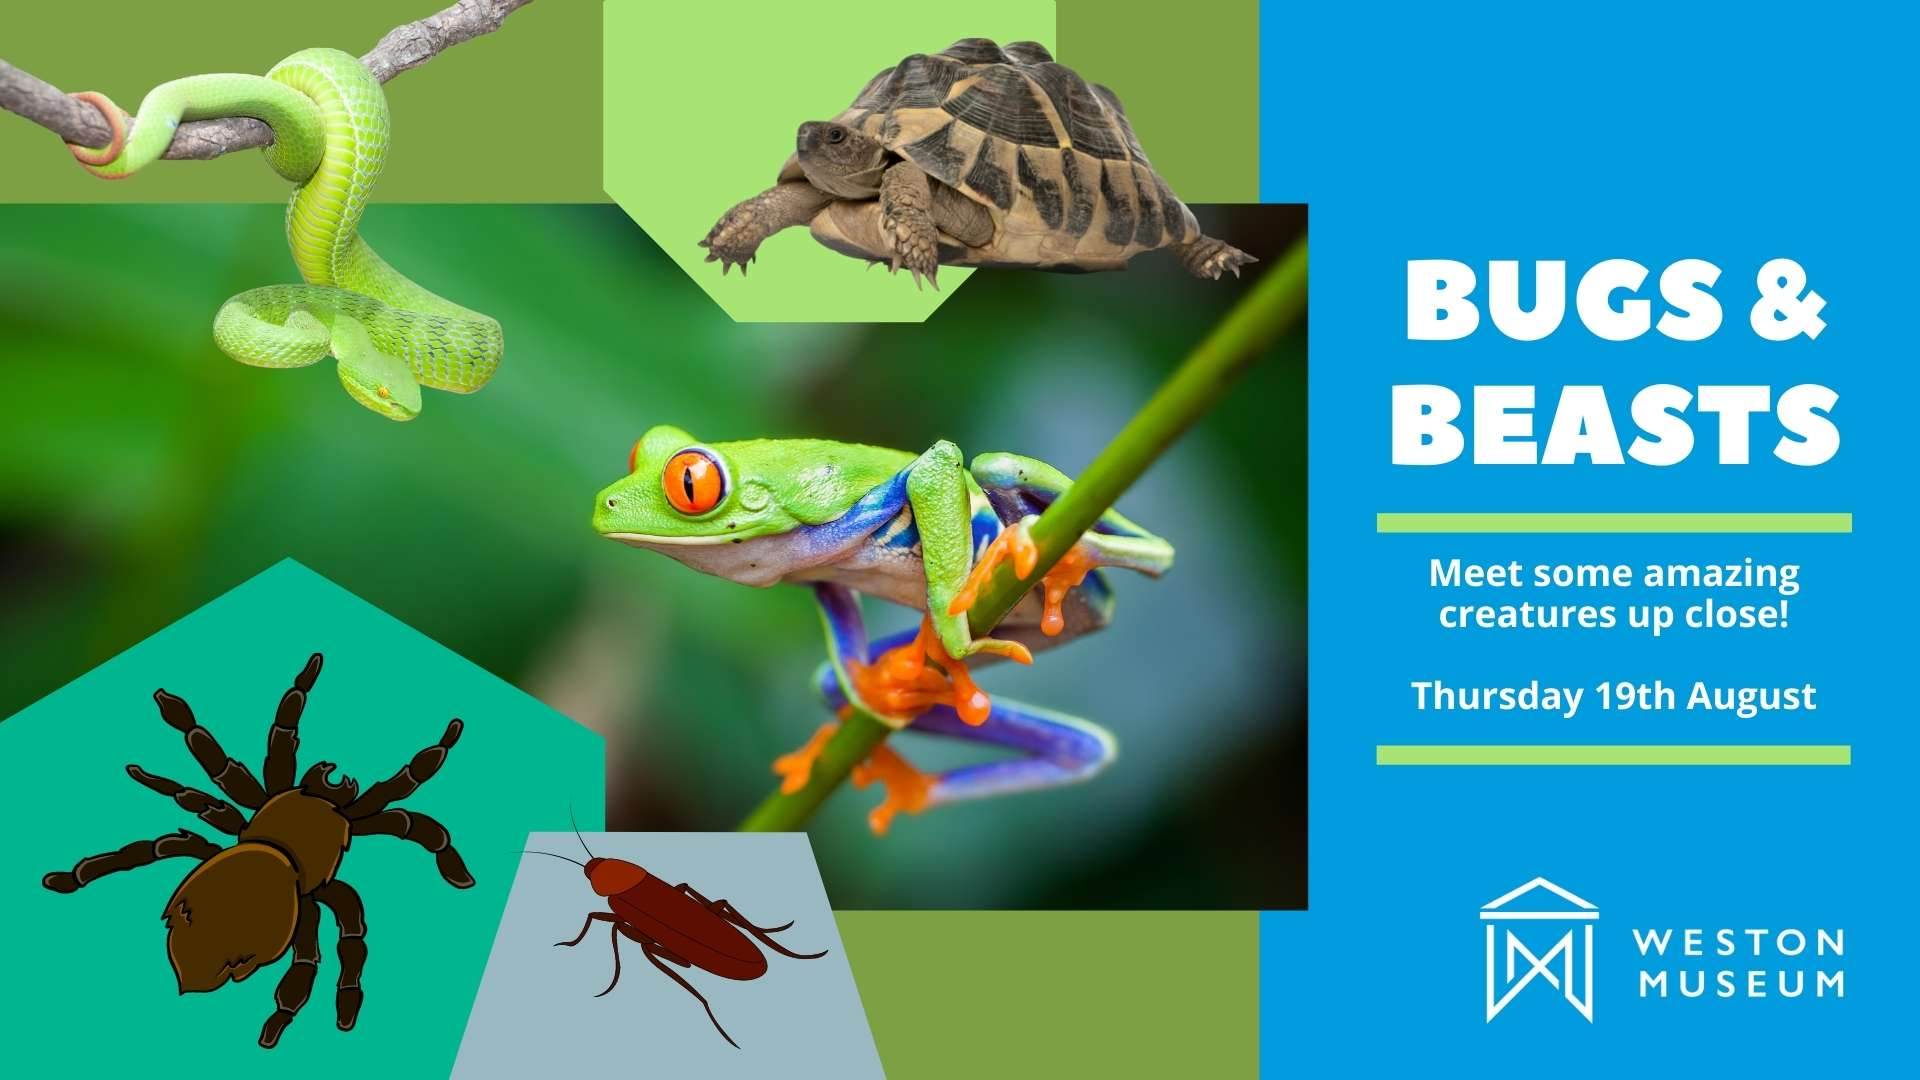 bugs and beasts poster with images of insects and animals and text on the right hand side